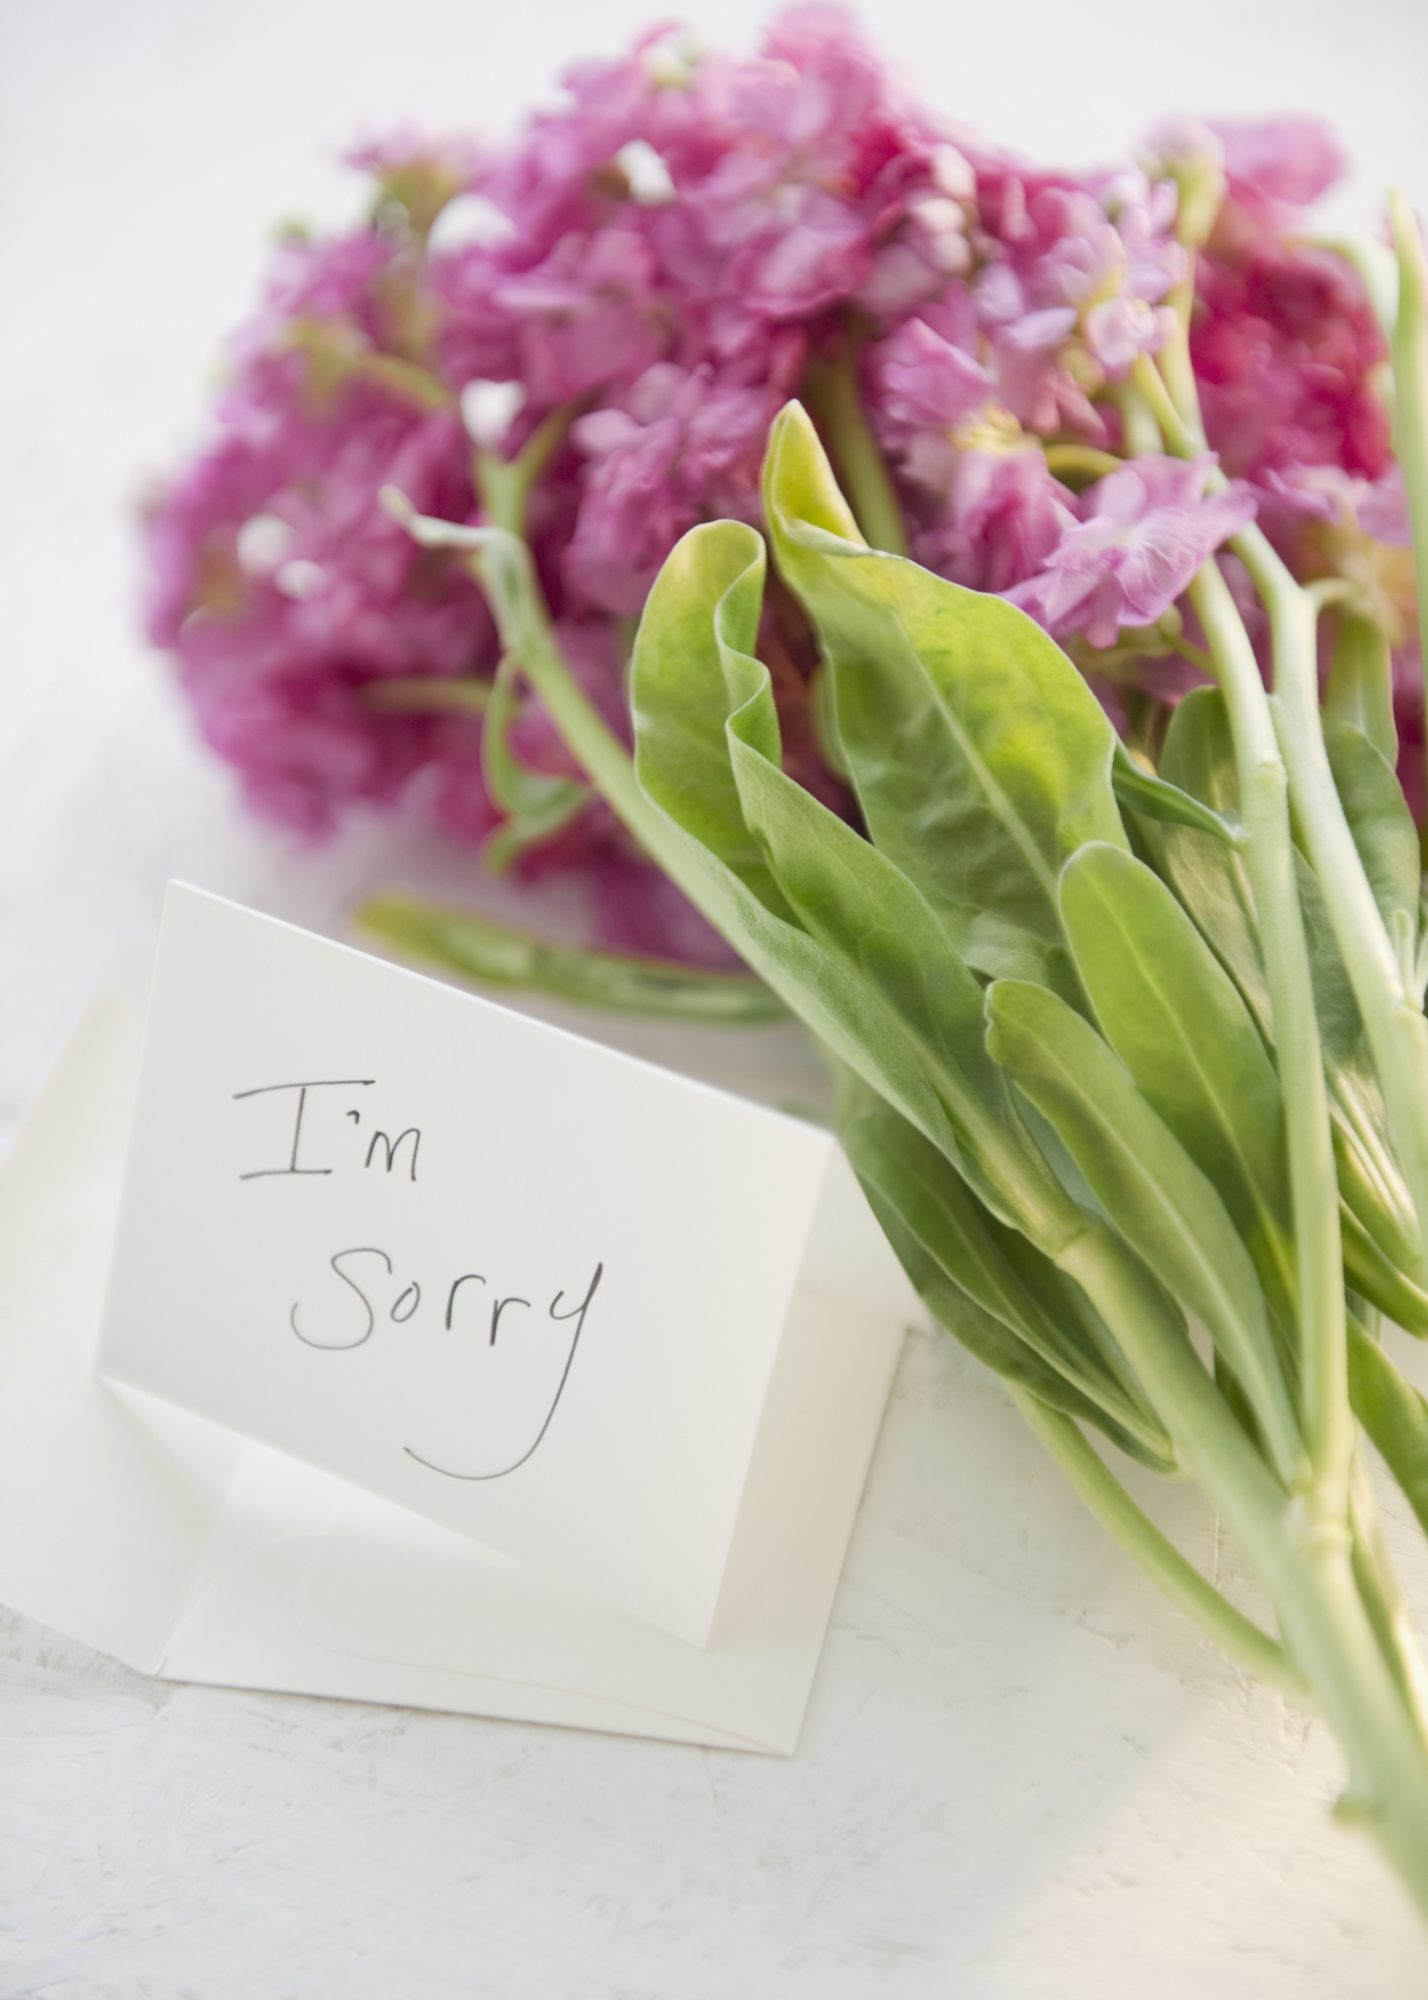 The Anatomy of a Good Apology, According to Science